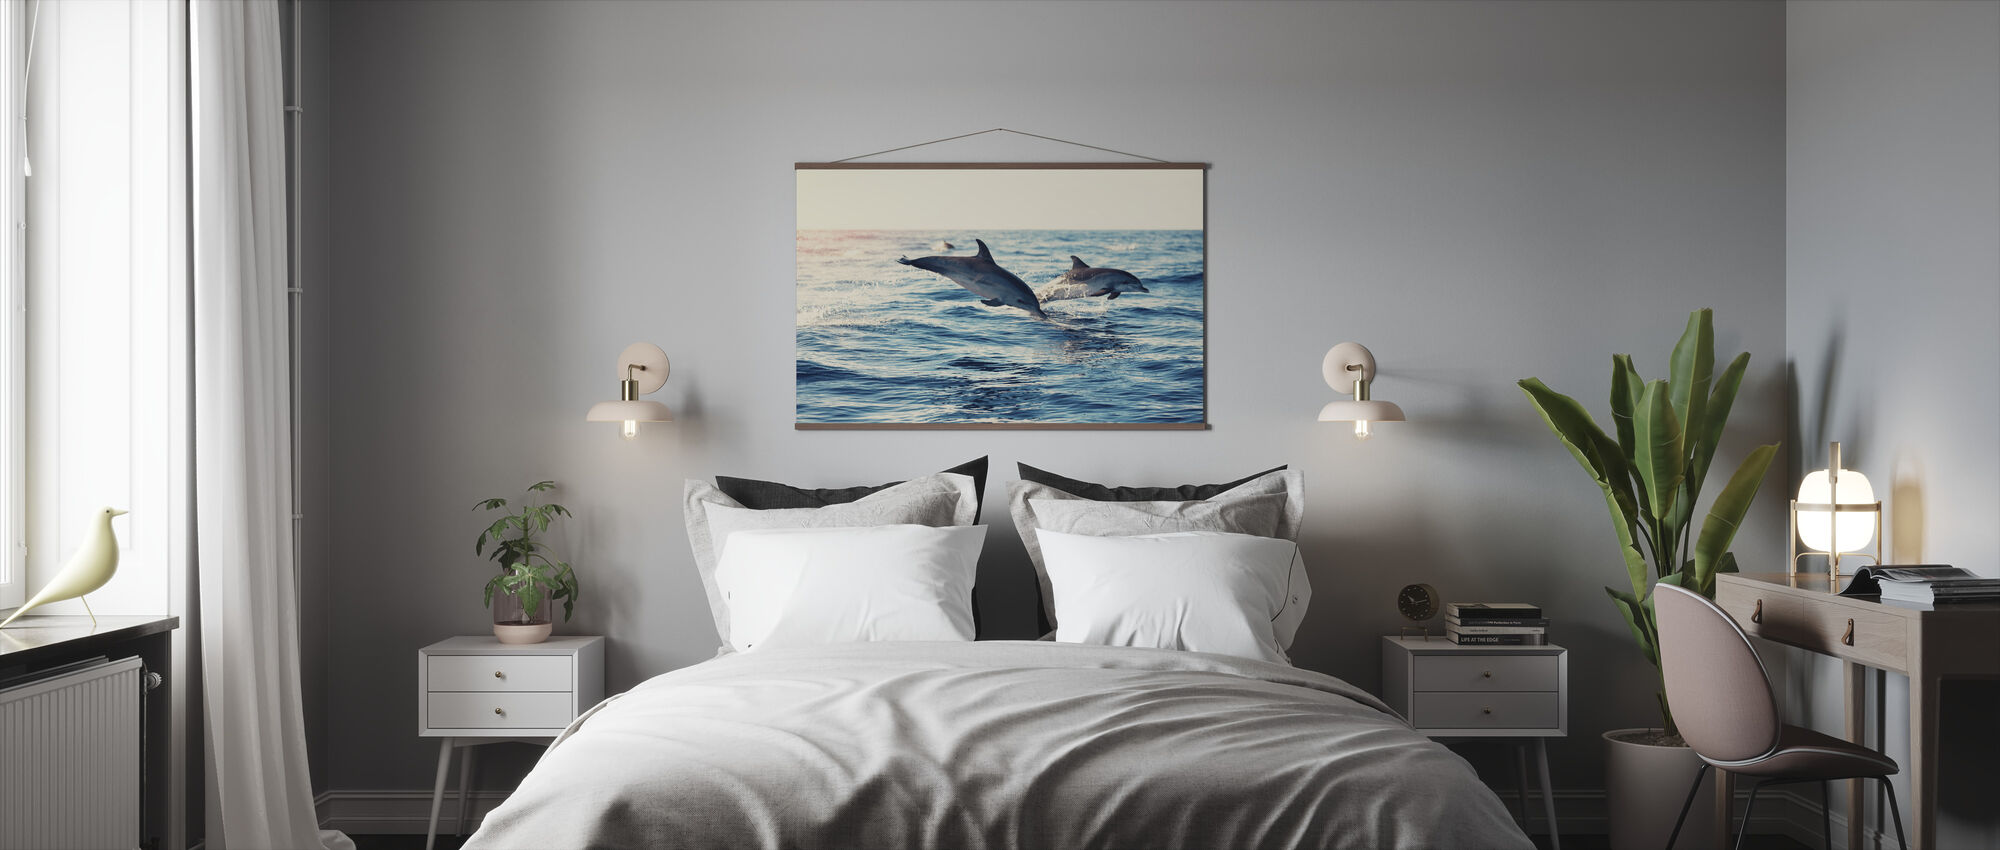 Dolphins Jumping from the Sea - Poster - Bedroom